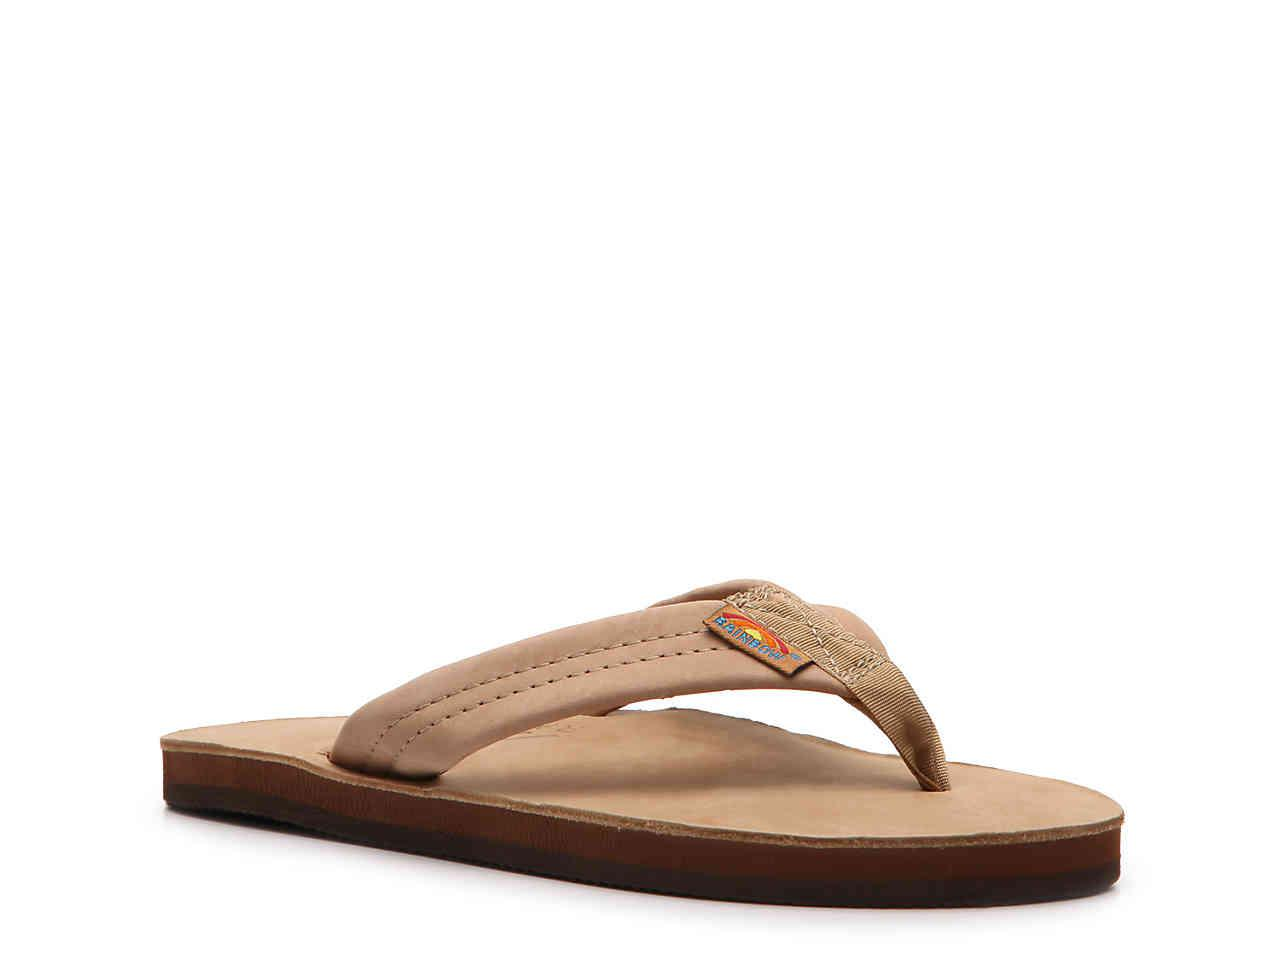 a1d0423049929a Lyst - Rainbow Sandals Thick Strap Flip Flop in Brown